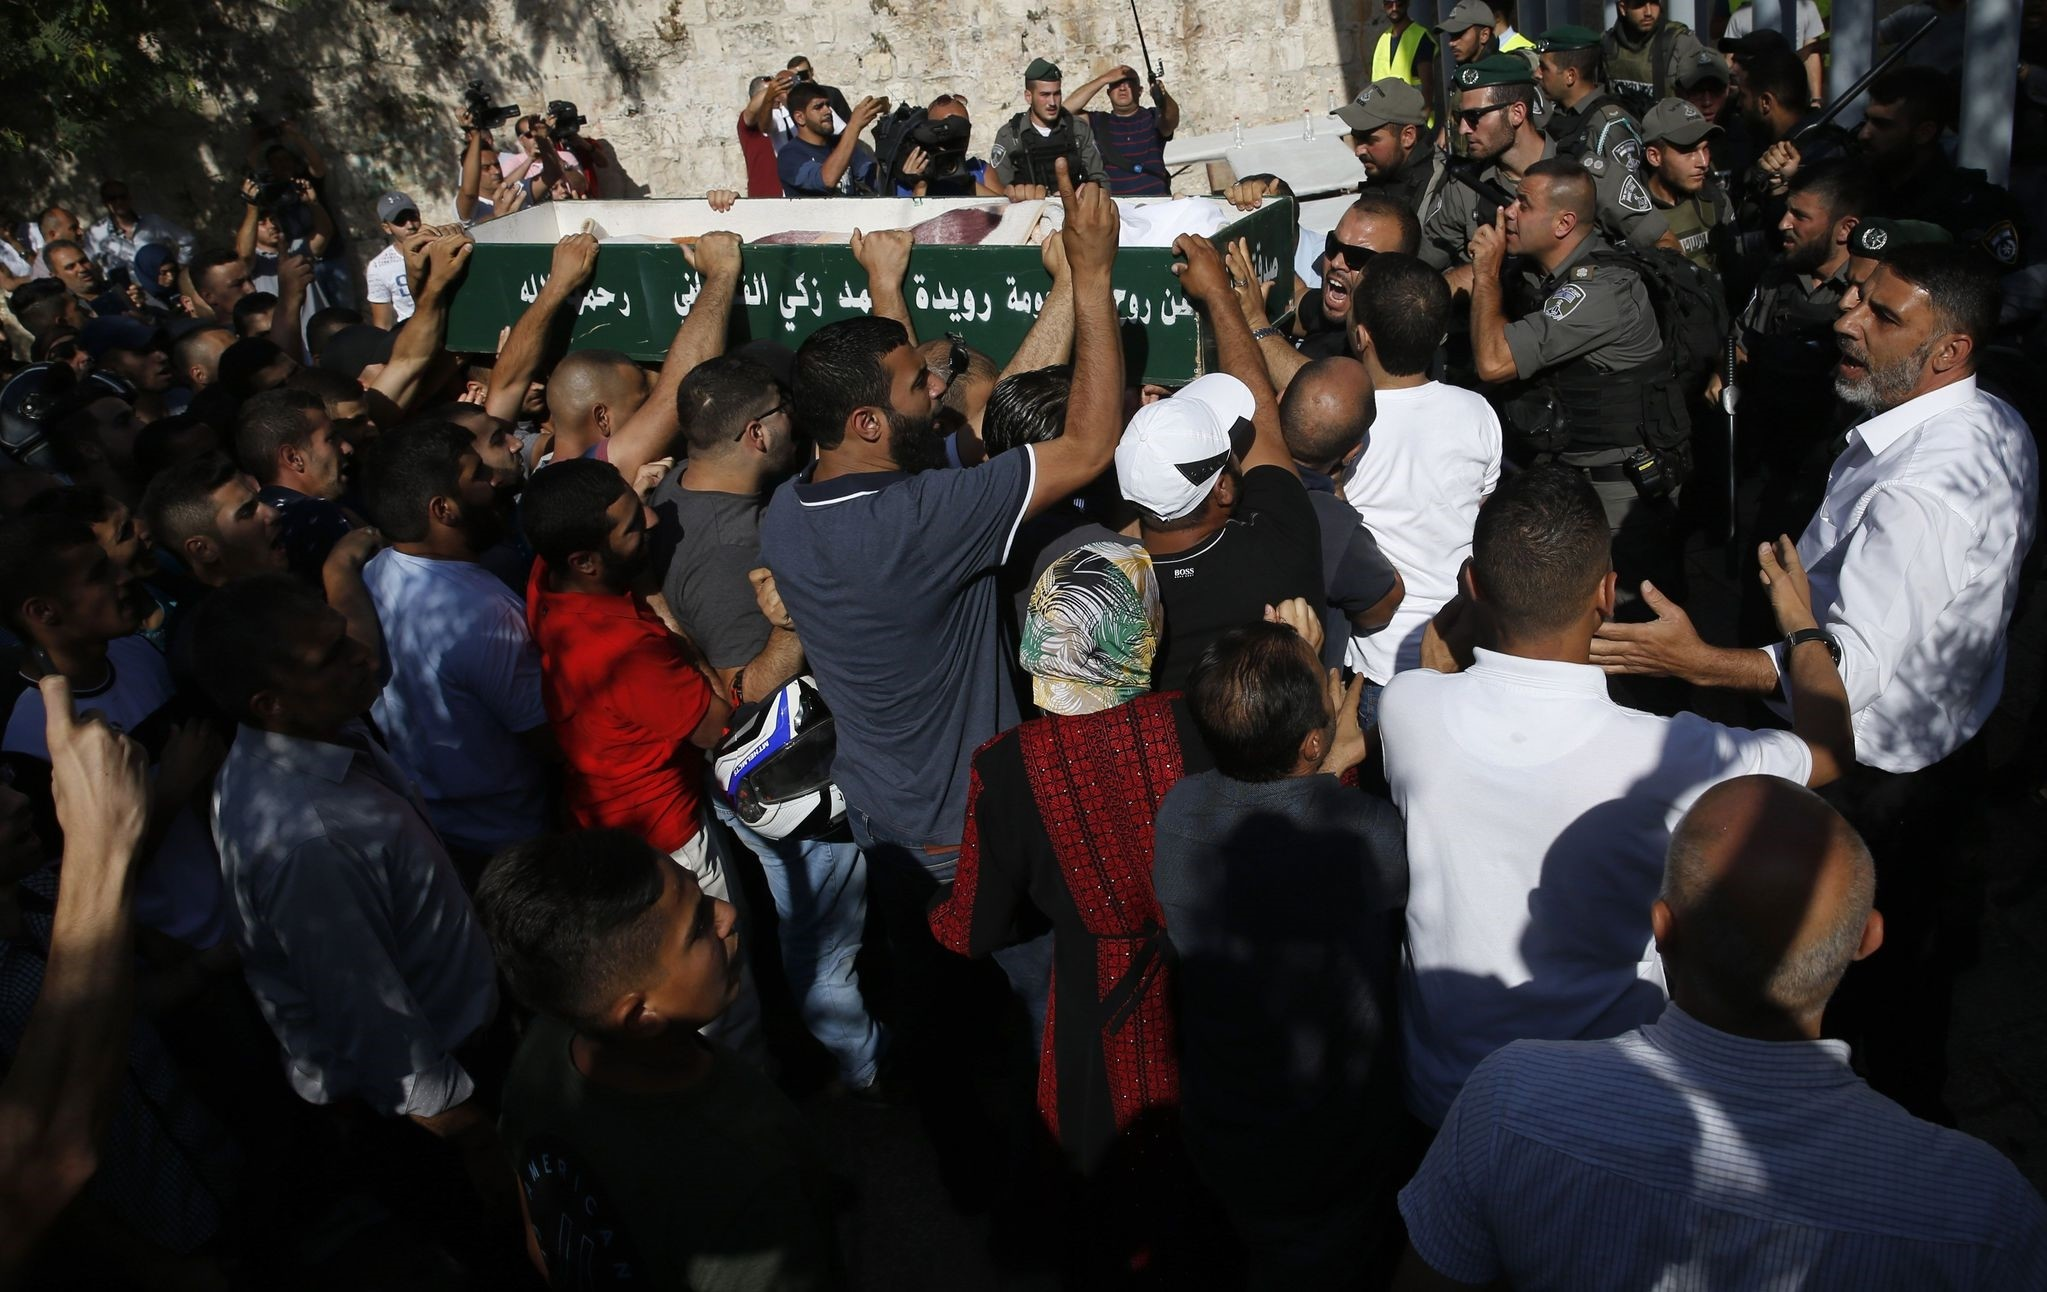 Palestinian mourners carry a coffin outside Al-Aqsa mosque compound as they refuse to undergo checking by Israeli (AFP PHOTO)